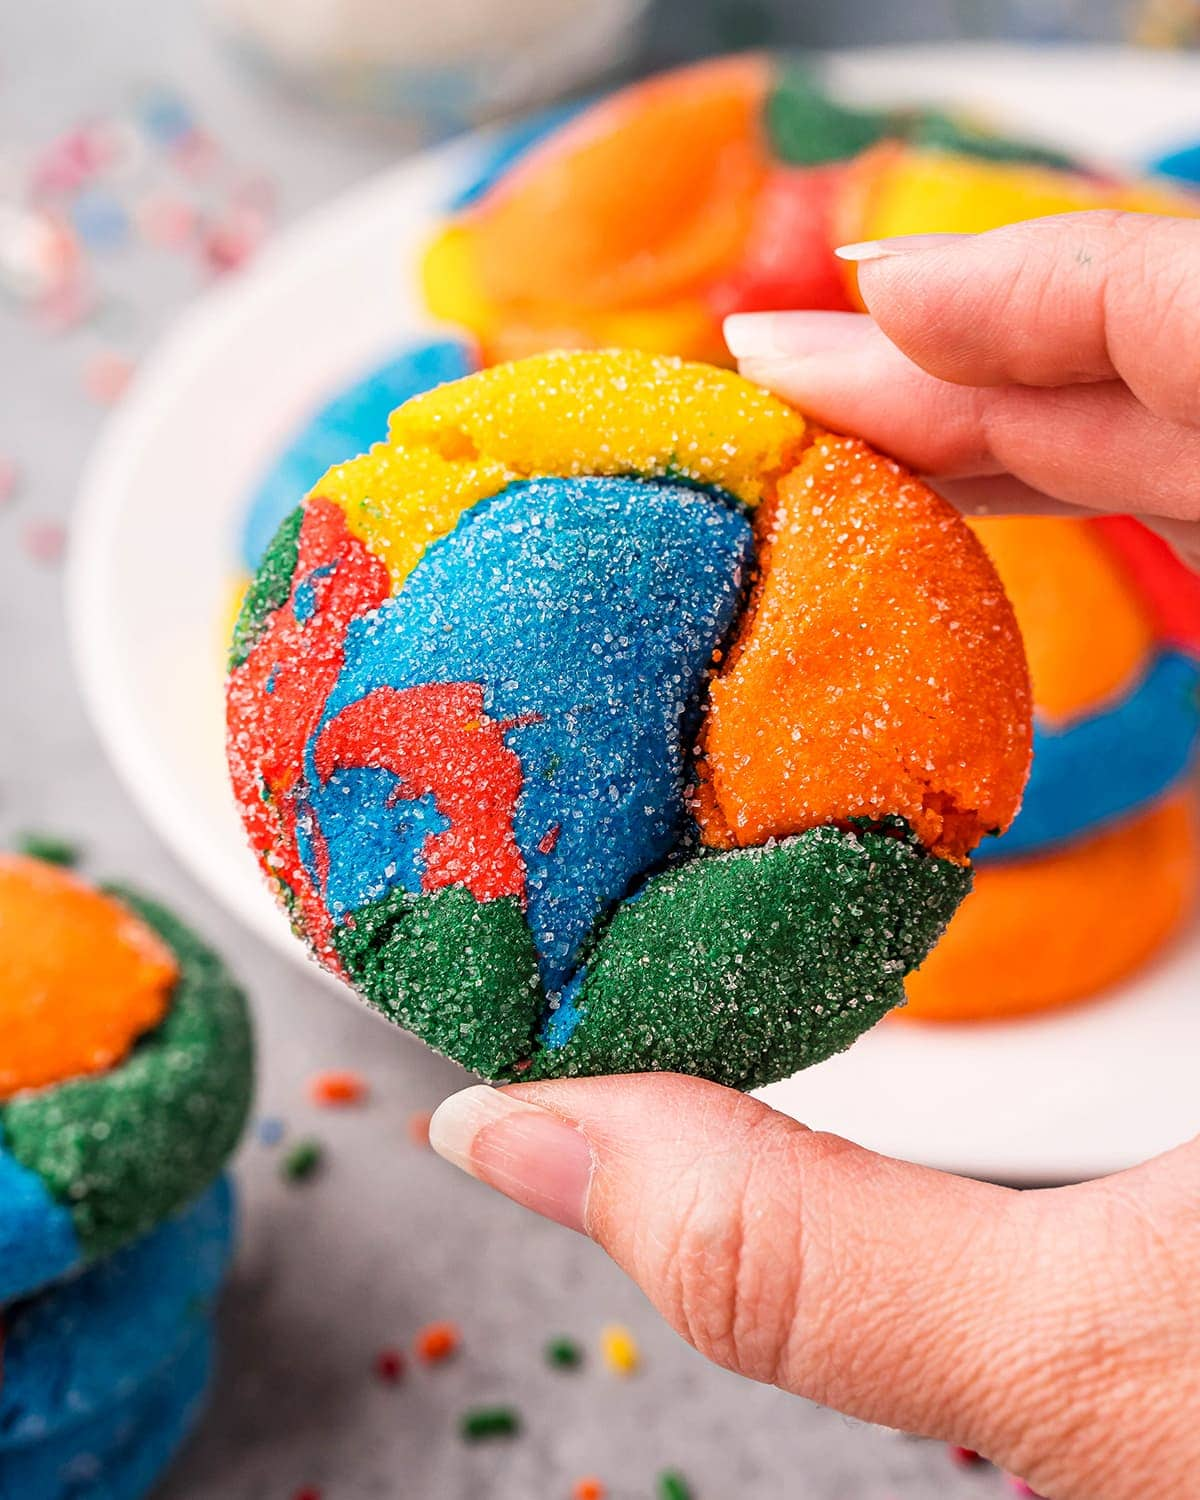 A hand holding a rainbow swirled cookie, with red, yellow, orange, blue and green colors.